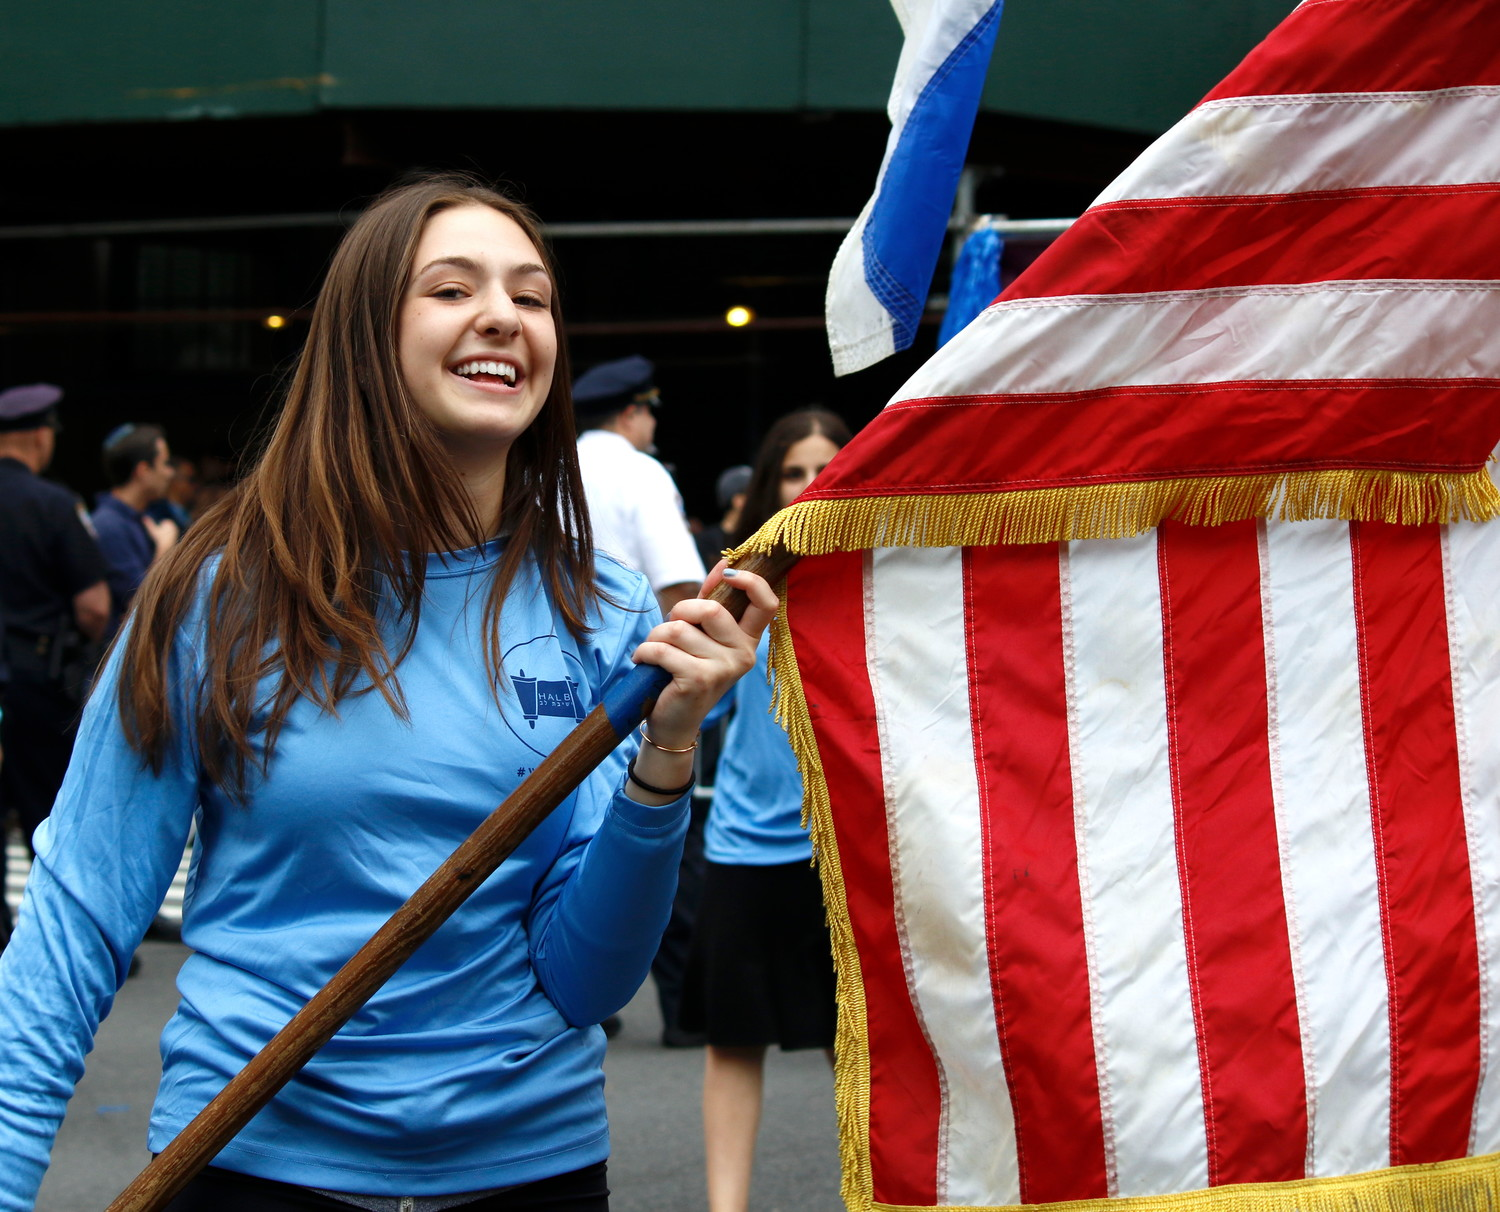 An SKA student carried the red-white-and-blue at the Celebrate Israel Parade.